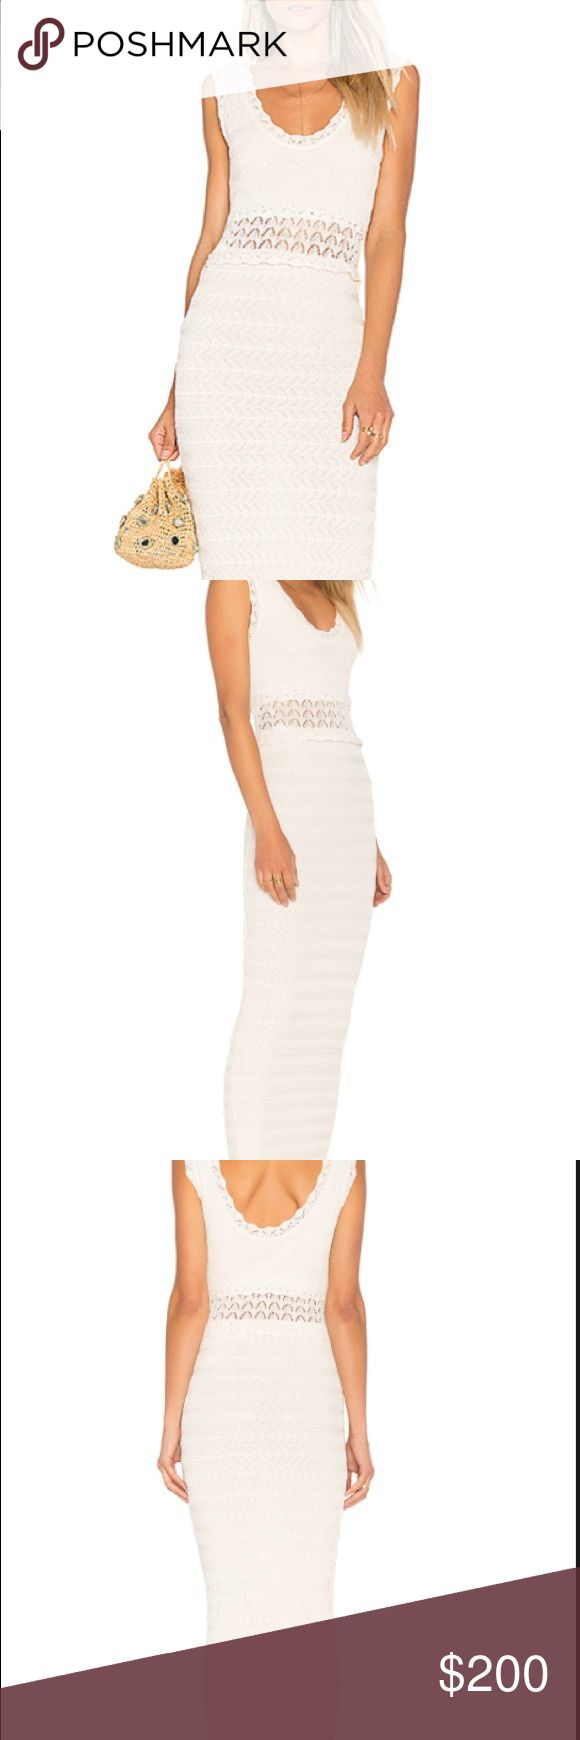 RONNY KOBO ivory Noria Maxi dress Size small, never worn, brand new with tags! Bought at Garmany. Selling it because I have no where to wear it. (Sorry for my low quality photos I am not a great photographer)! ❤️💕 Ronny Kobo Collection Dresses Maxi